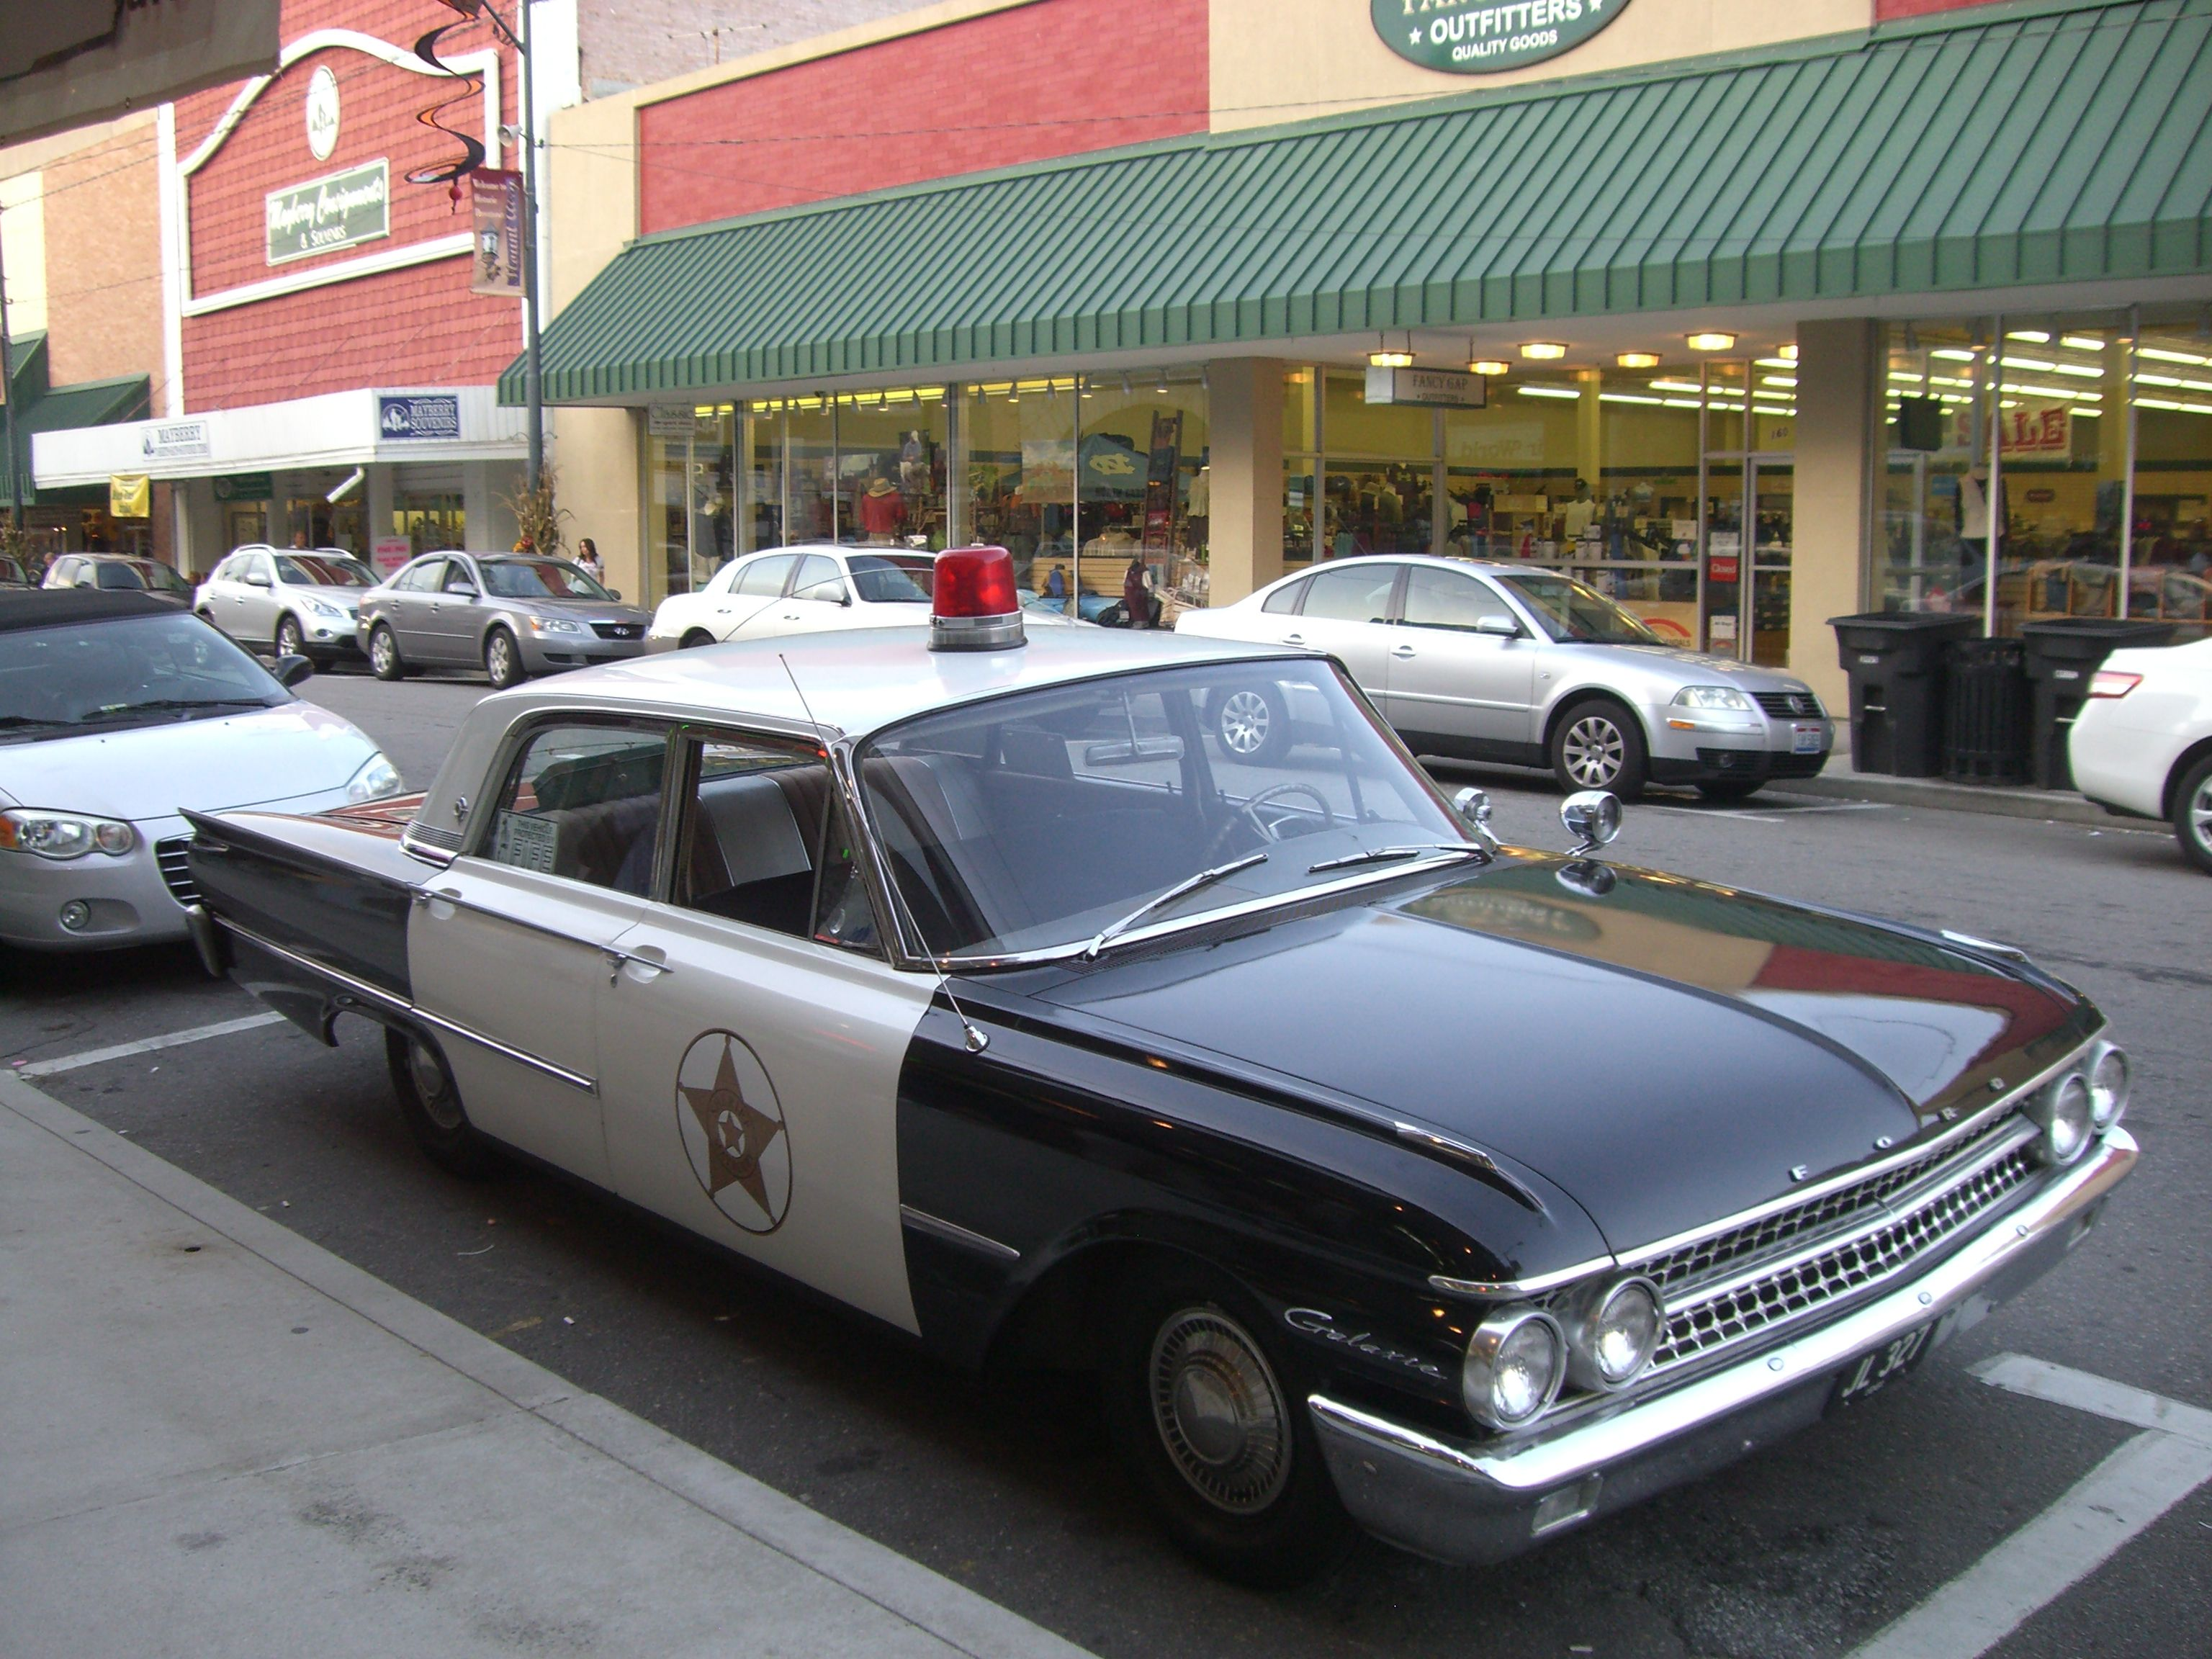 Old Car TV Show Cars | Here\'s an old police car from the Andy ...